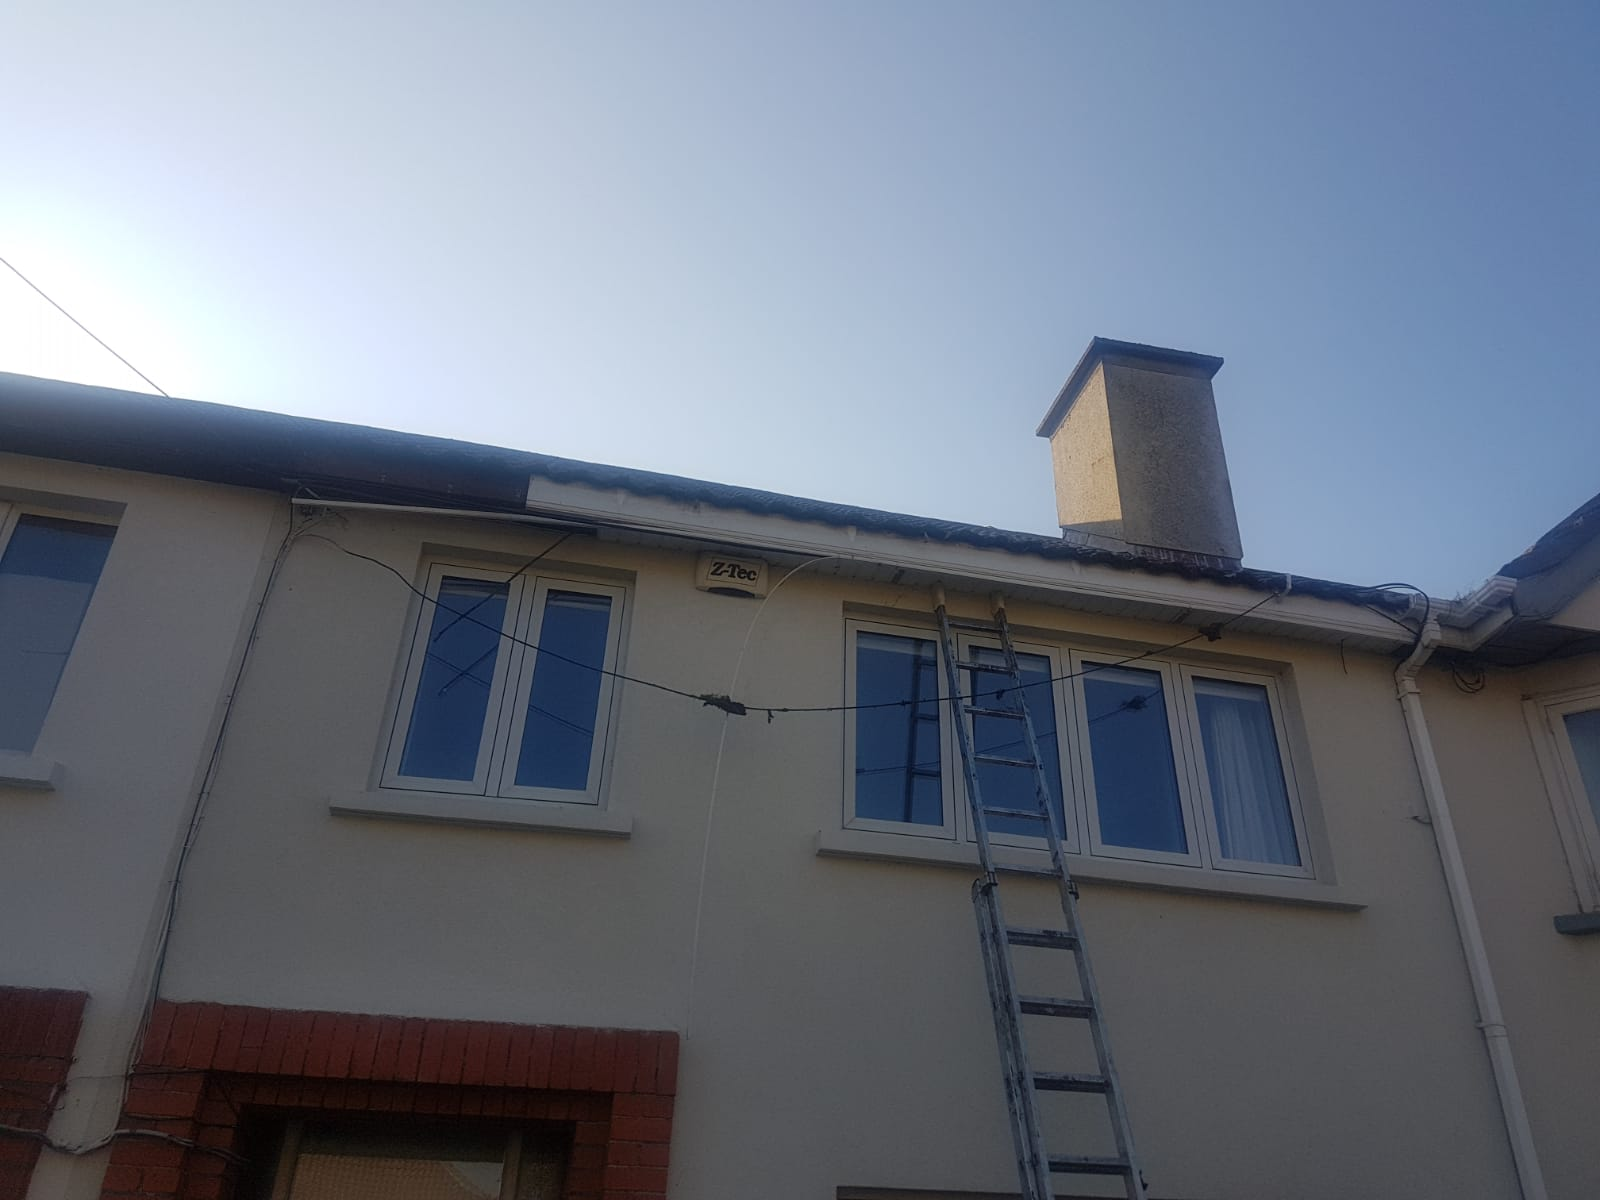 Guttering Repairs in Caragh, Co. Kildare